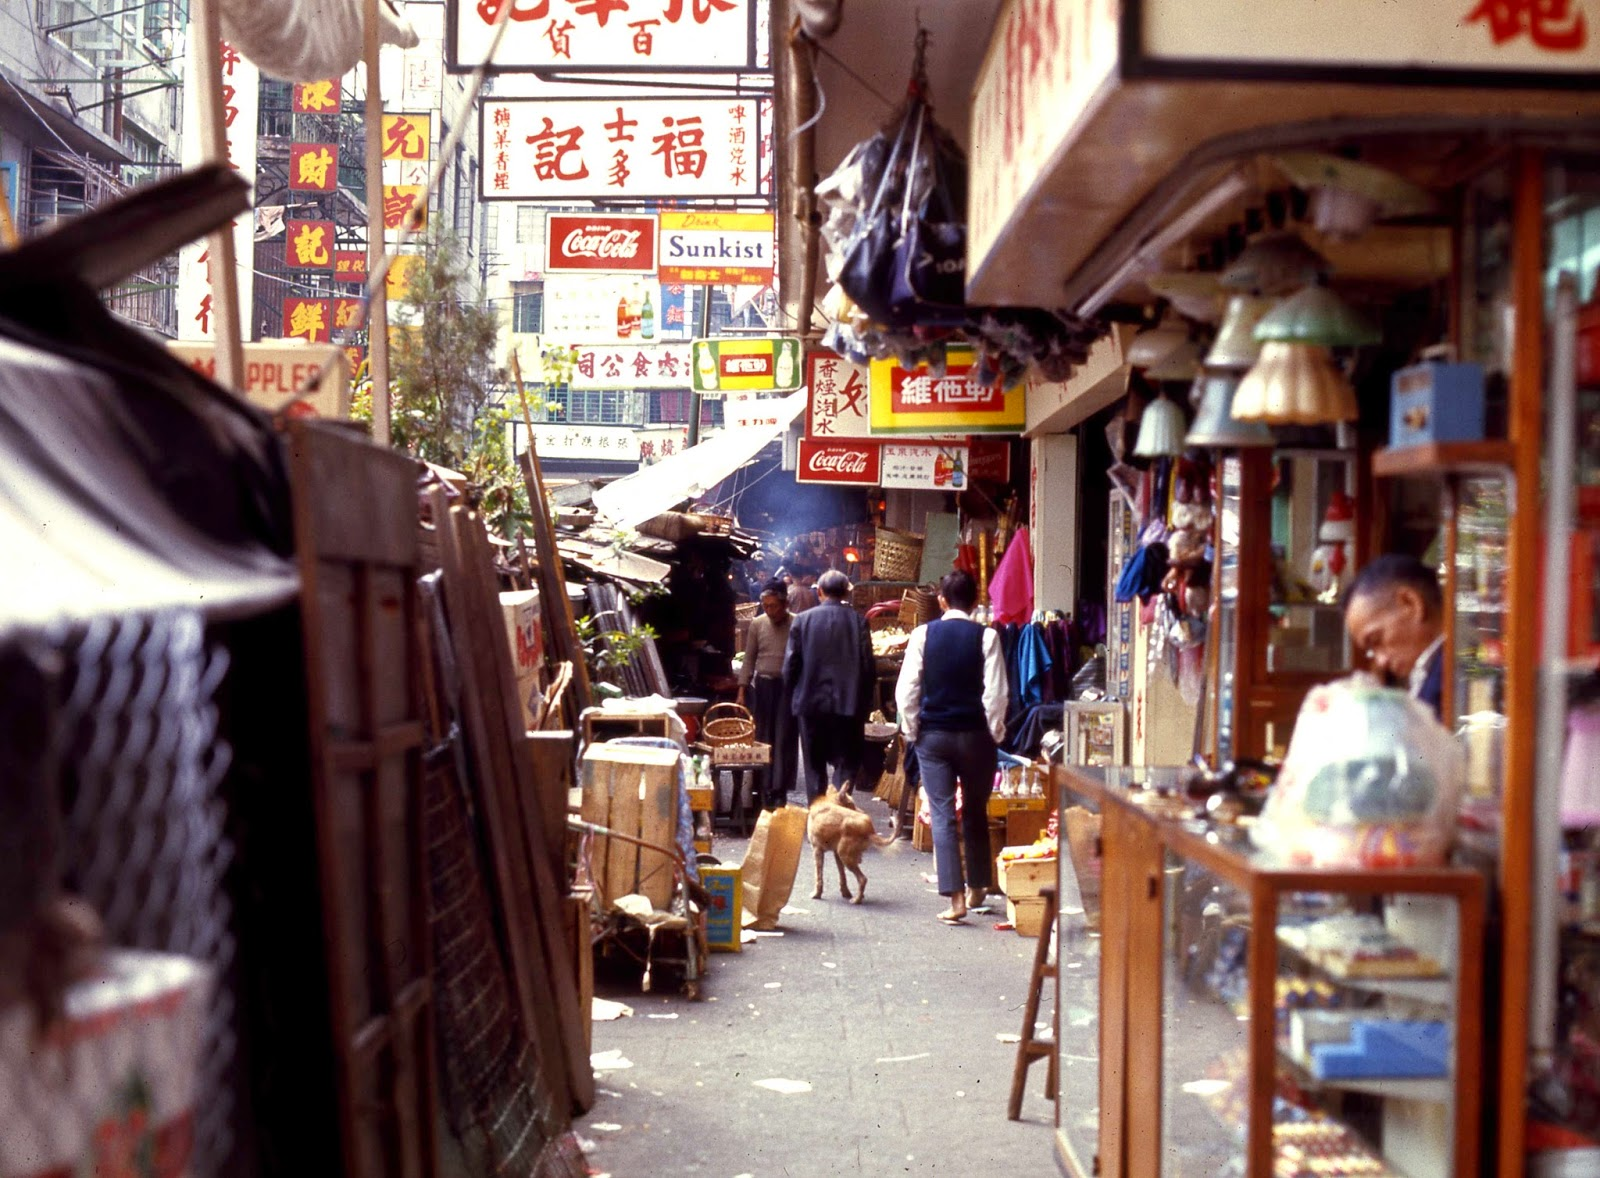 Hong Kong Market 1969 CocaCola and Sunkist signs